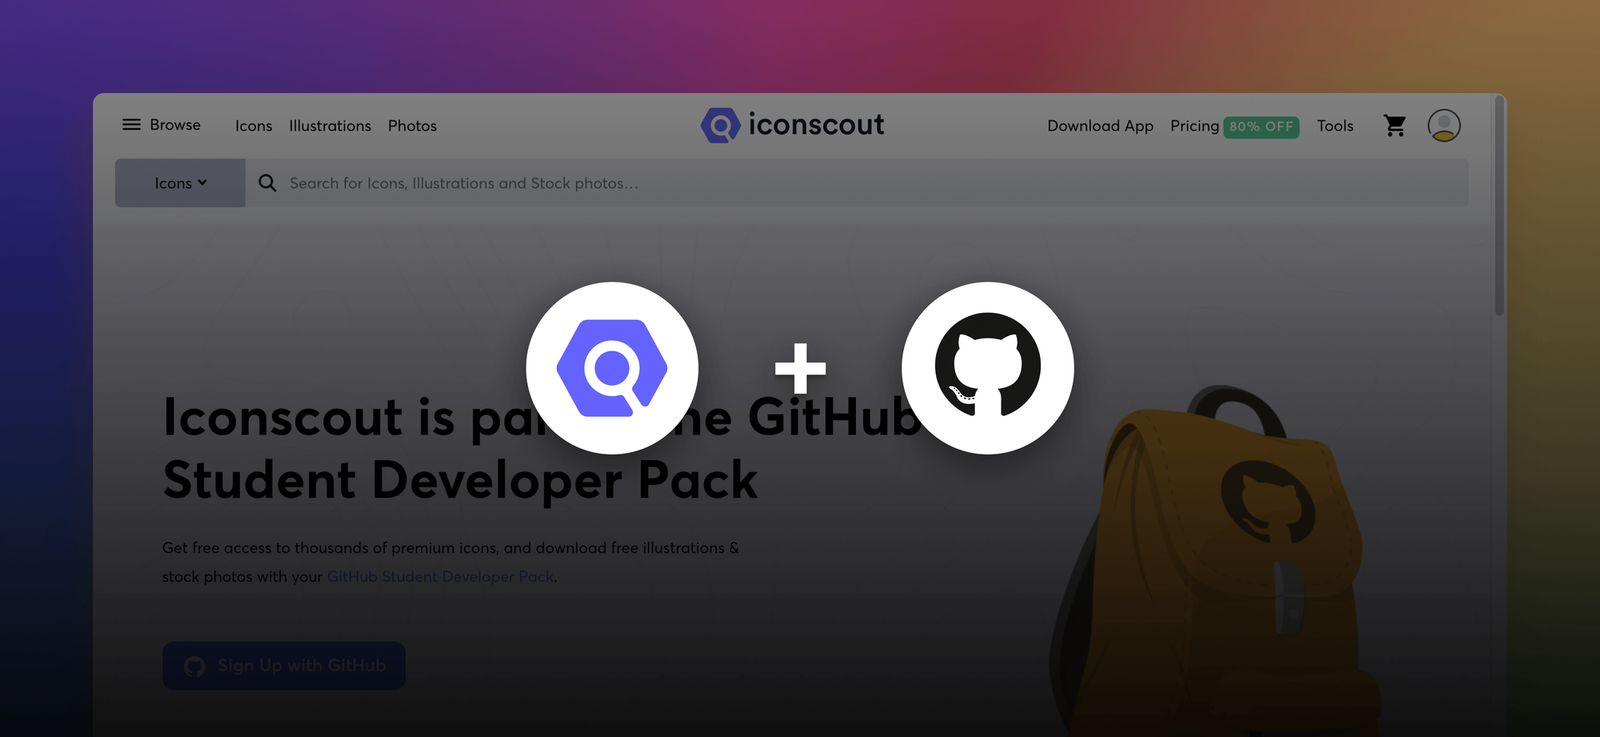 How Iconscout helped 10,000+ students with GitHub Student Pack